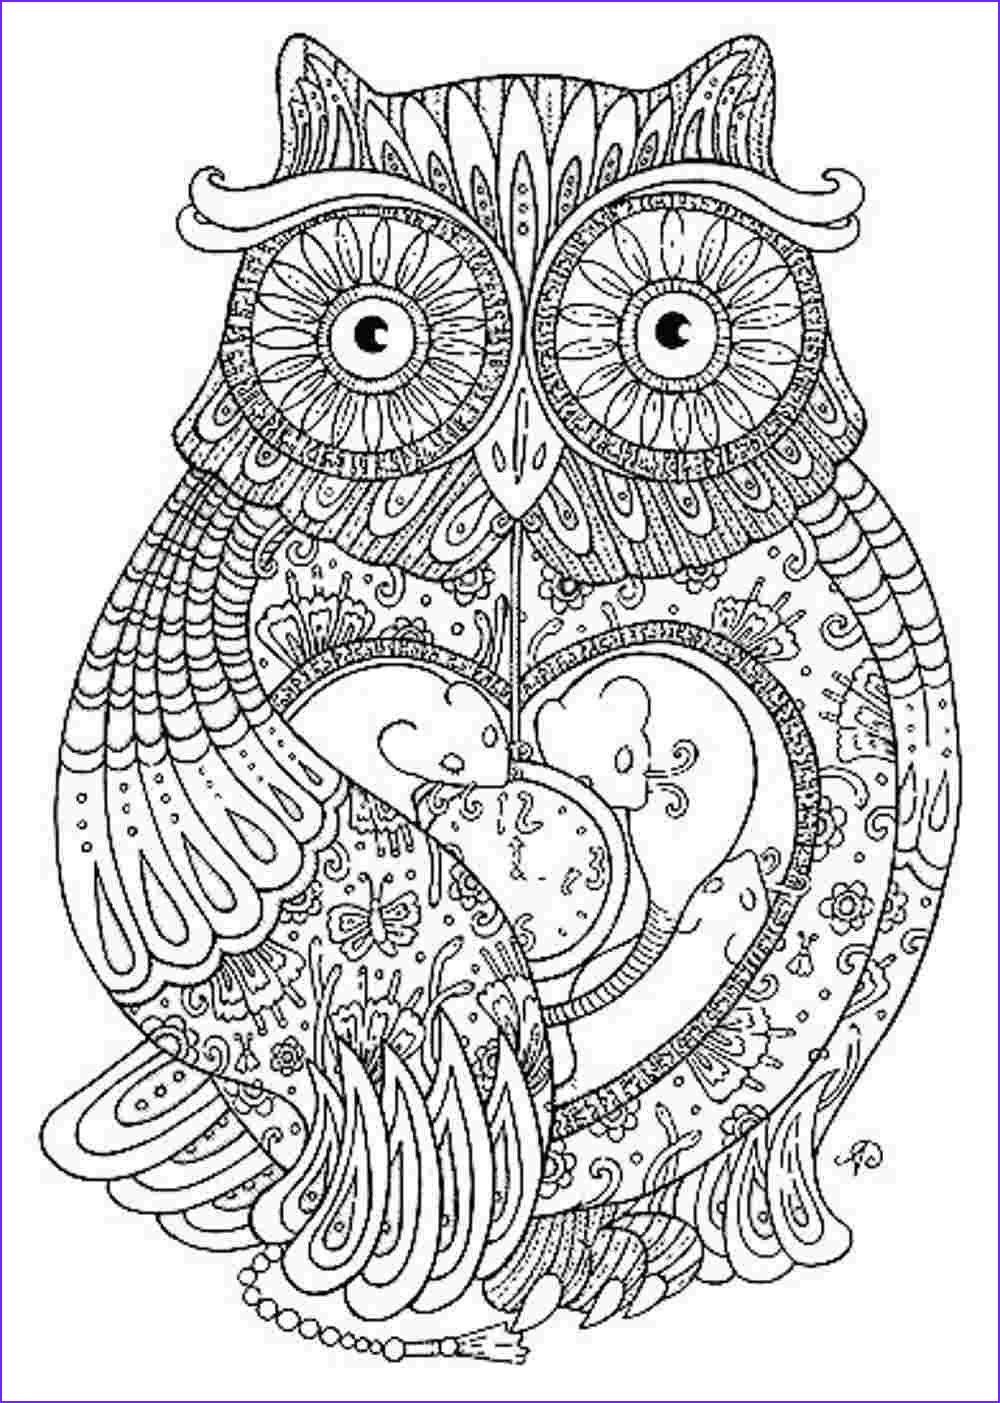 Owl Coloring Books for Adults Elegant Stock Owl Coloring Pages for Adults Printable Kids Colouring